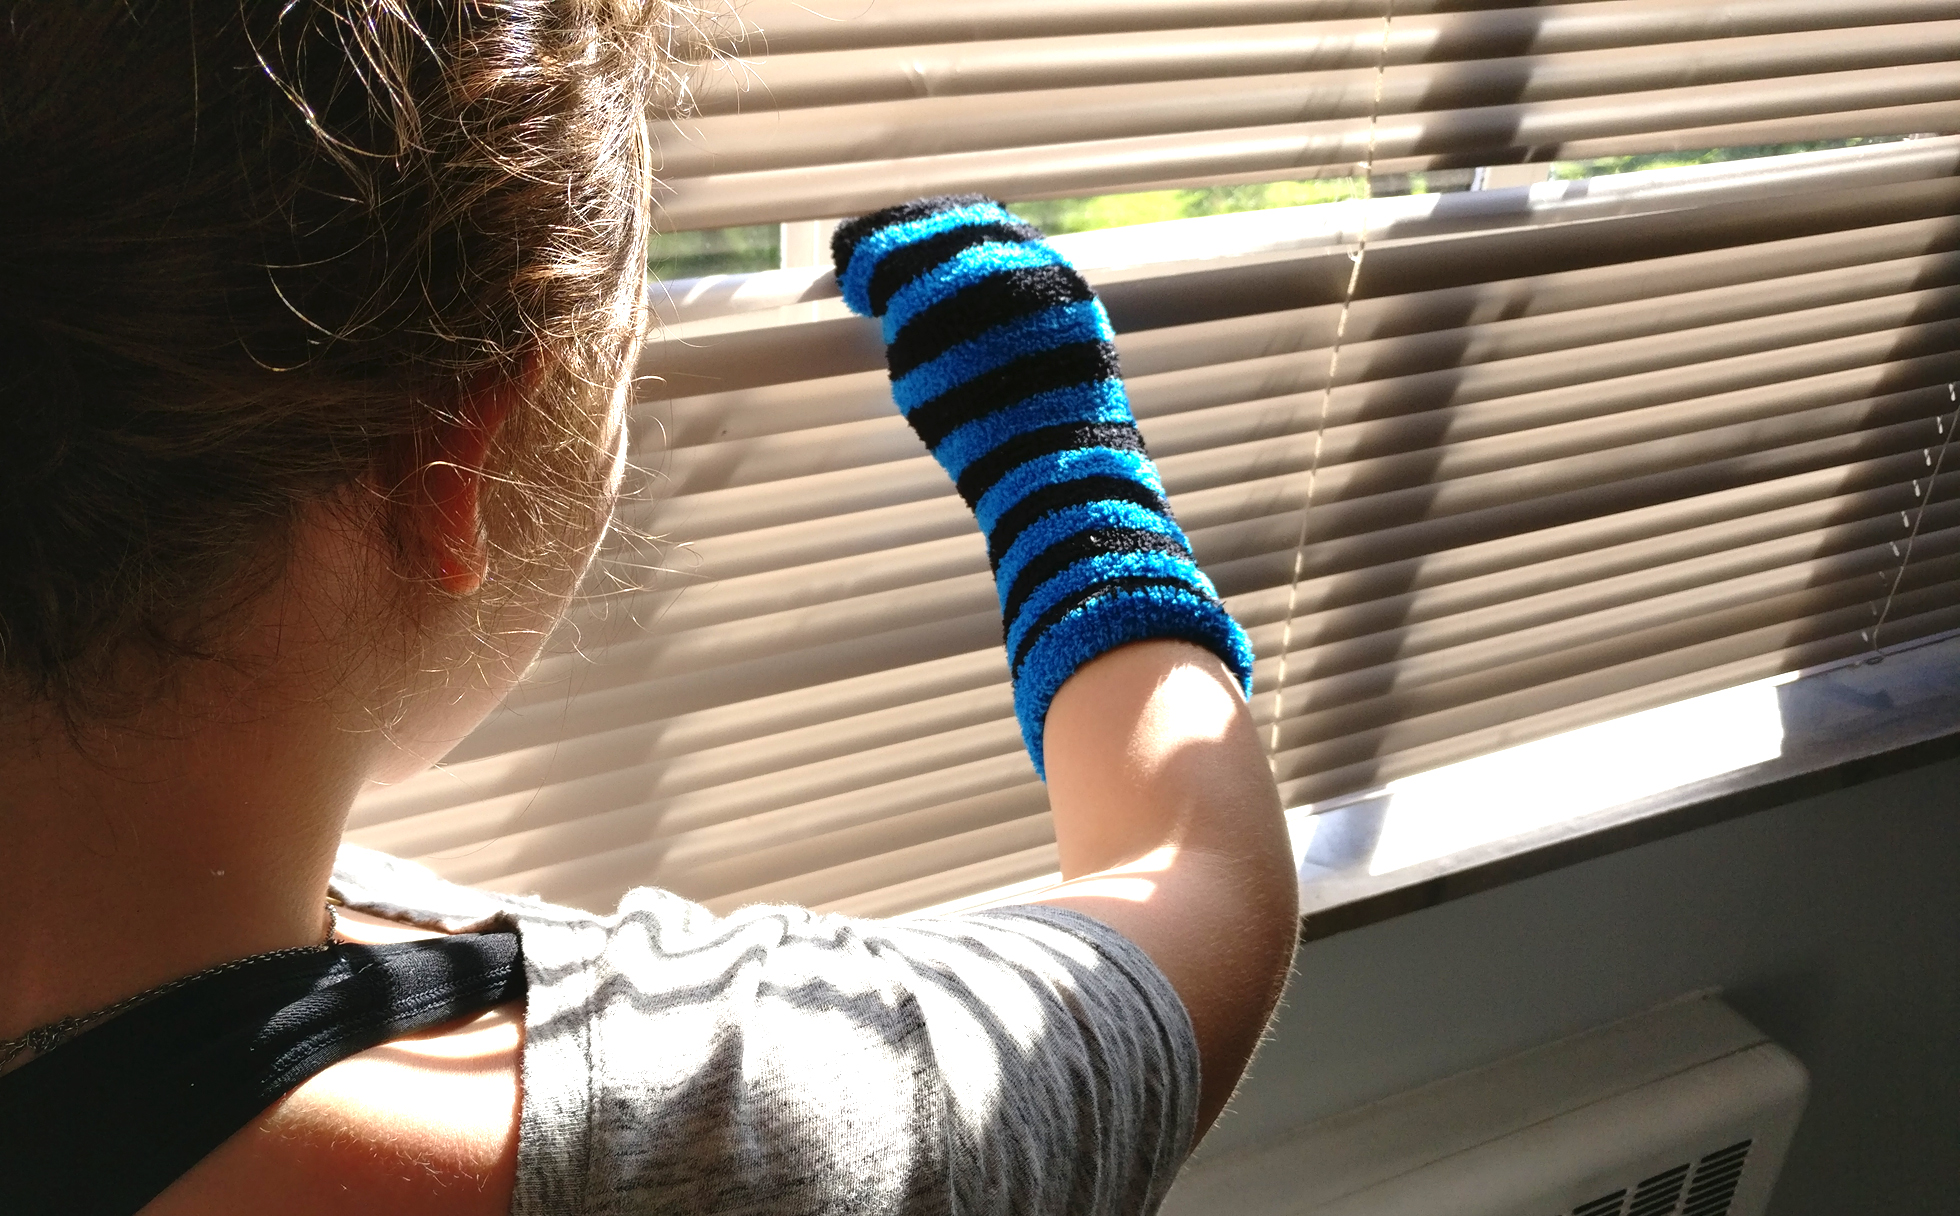 Cleaning hack using socks with blinds